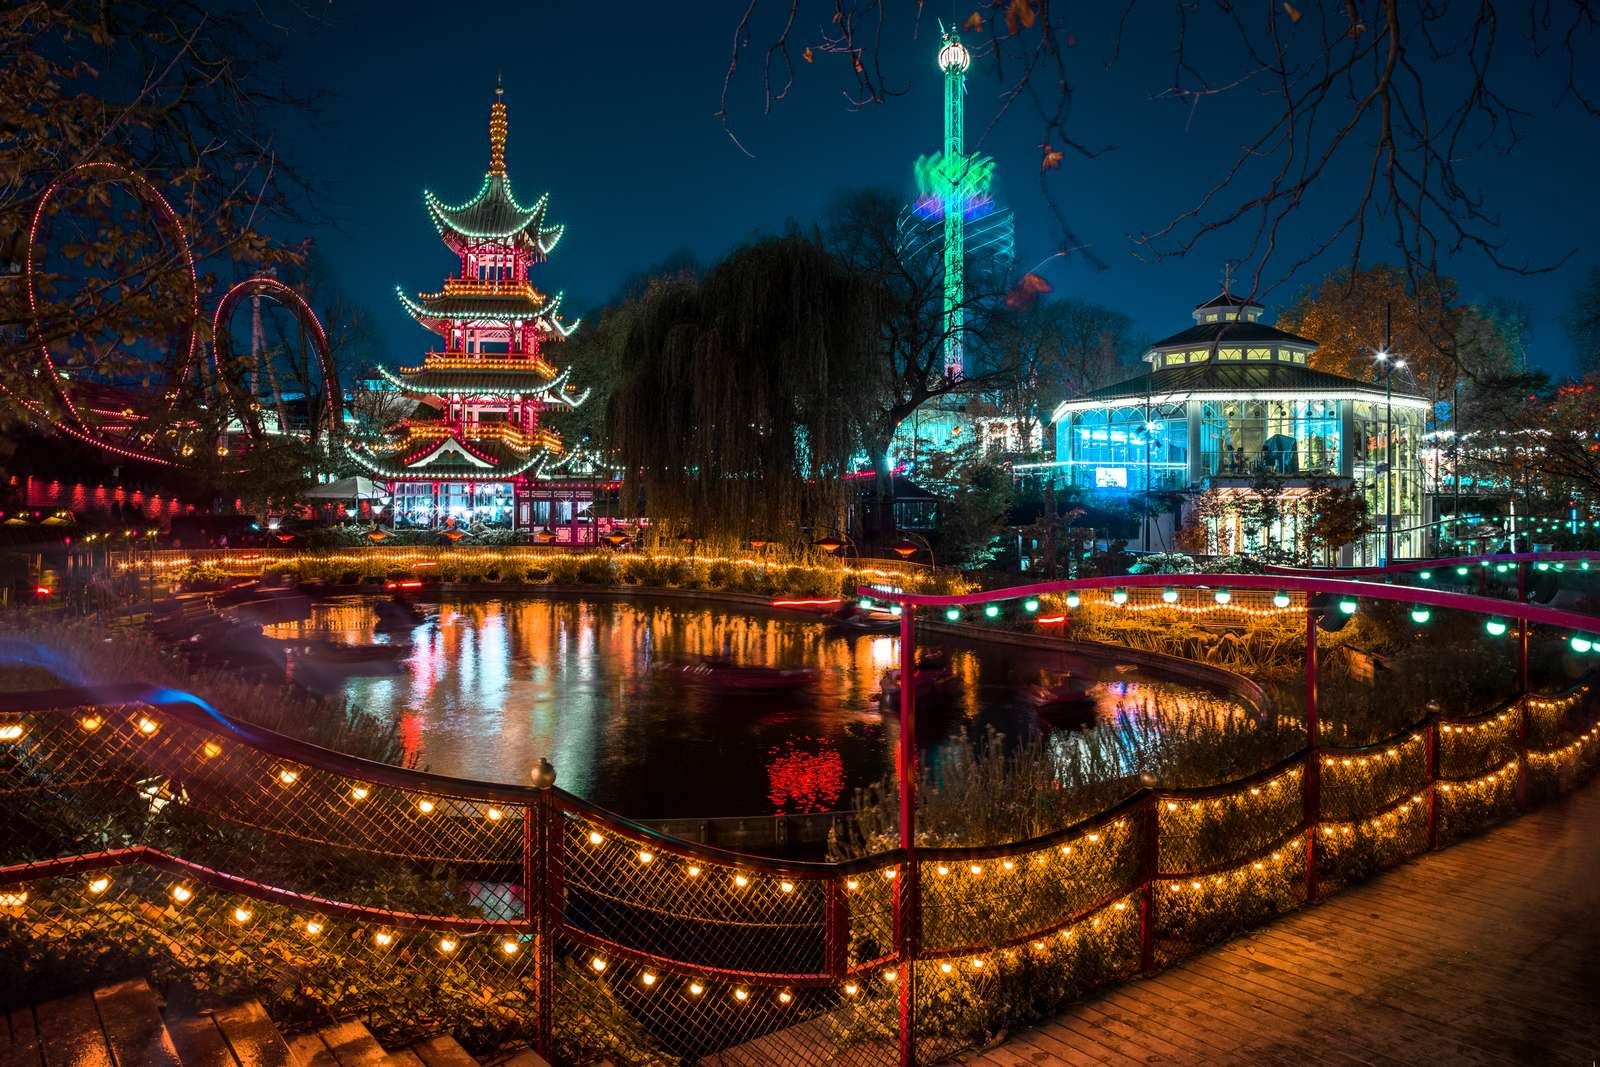 Tivoli Gardens at Night Image Courtesy : Copenhagen Media Center Photo By : Eleonora Costi